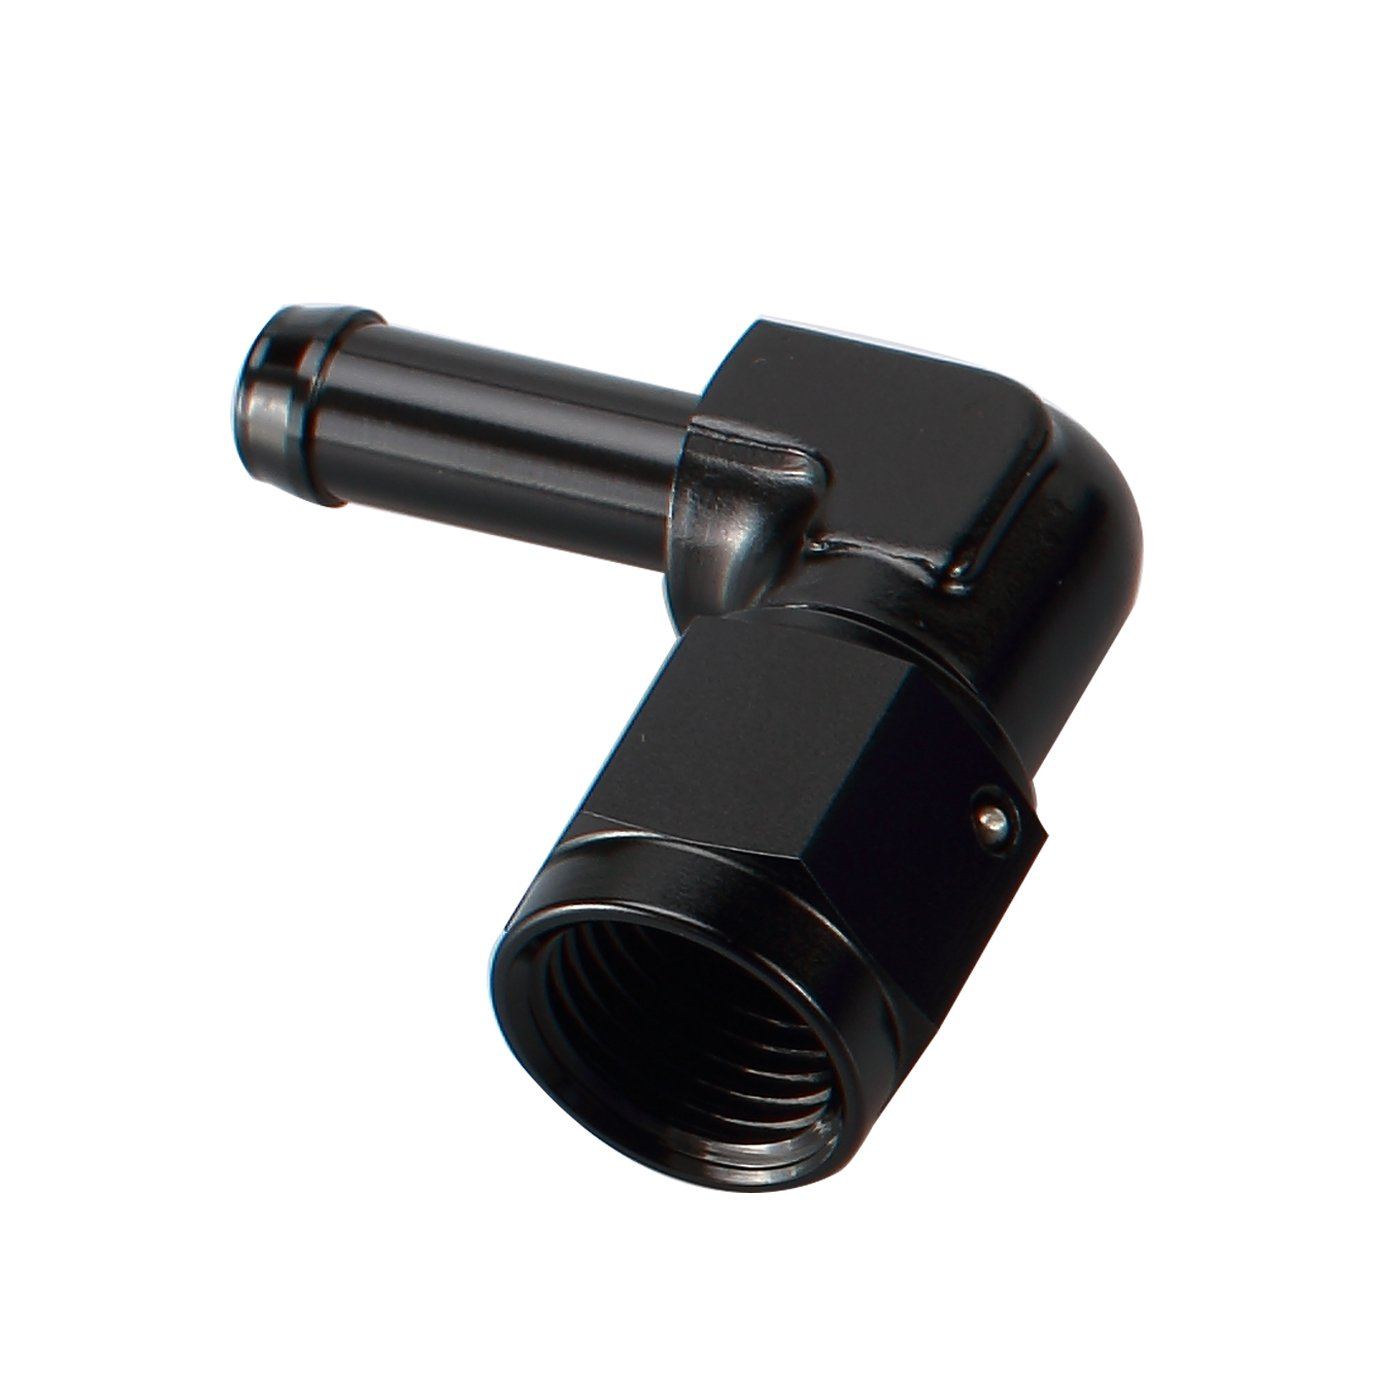 Female 6AN AN6 To 3/8 Barb 90 Degree Swivel Hose Fitting Aluminum Hose Barb Fuel Line Adapter Black Anodized